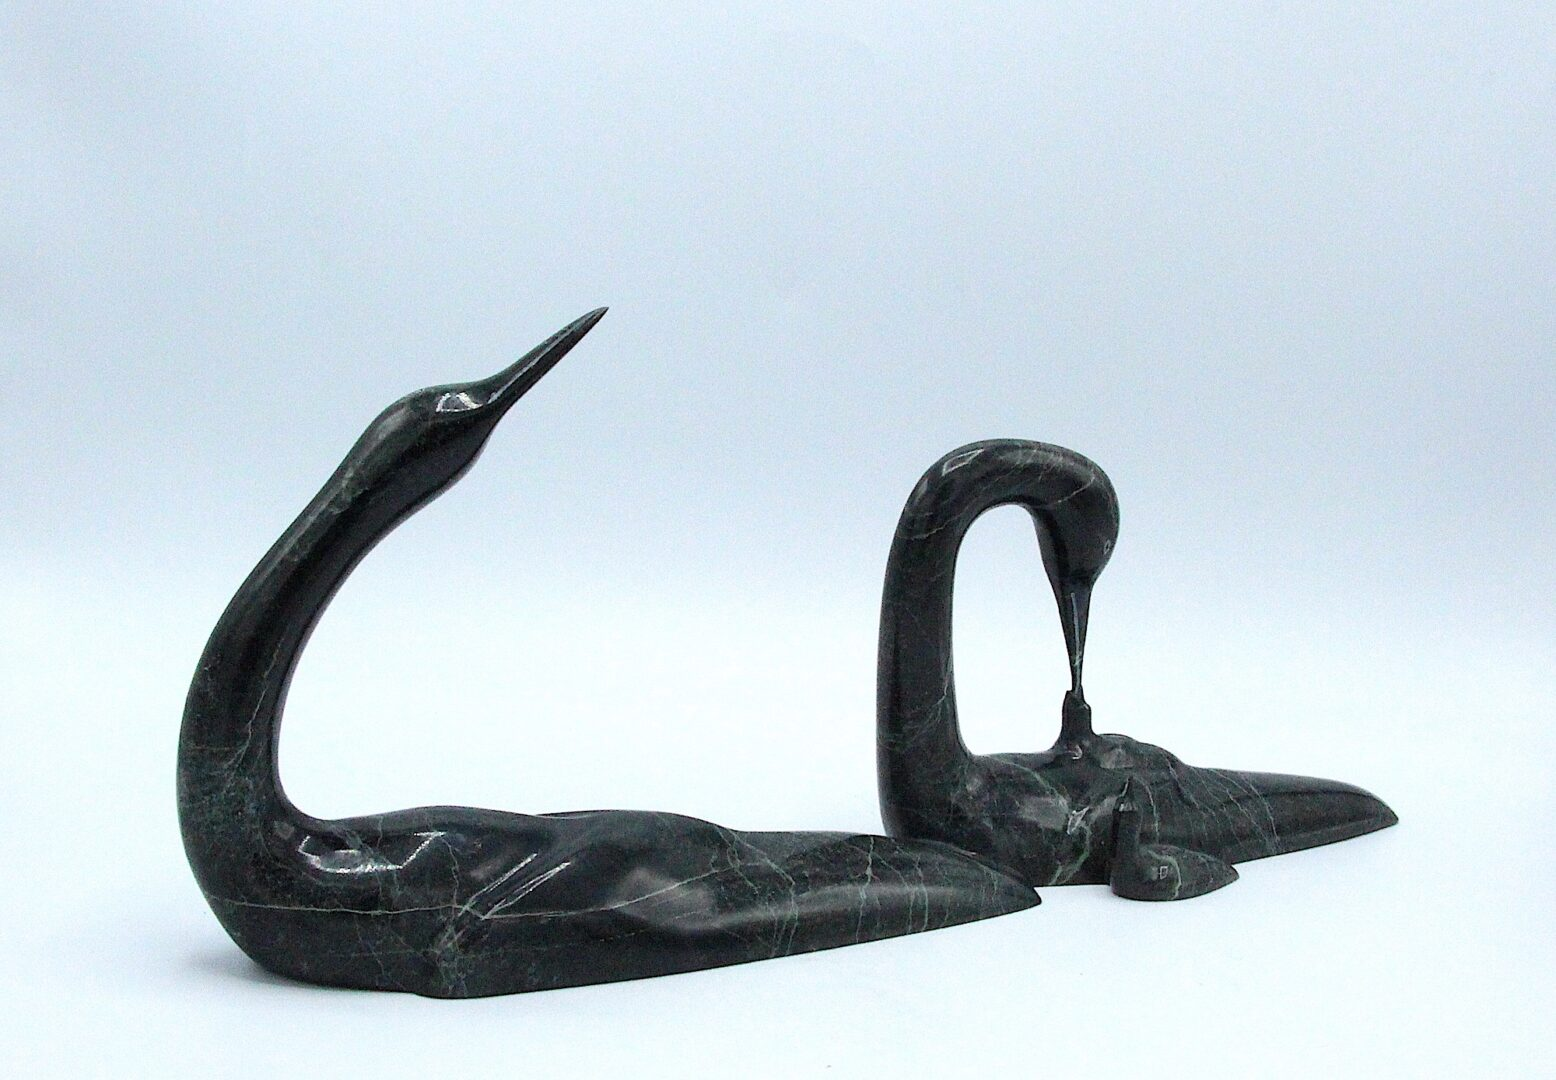 two loons feeding chicks Inuit Art Sculpture in Serpentine